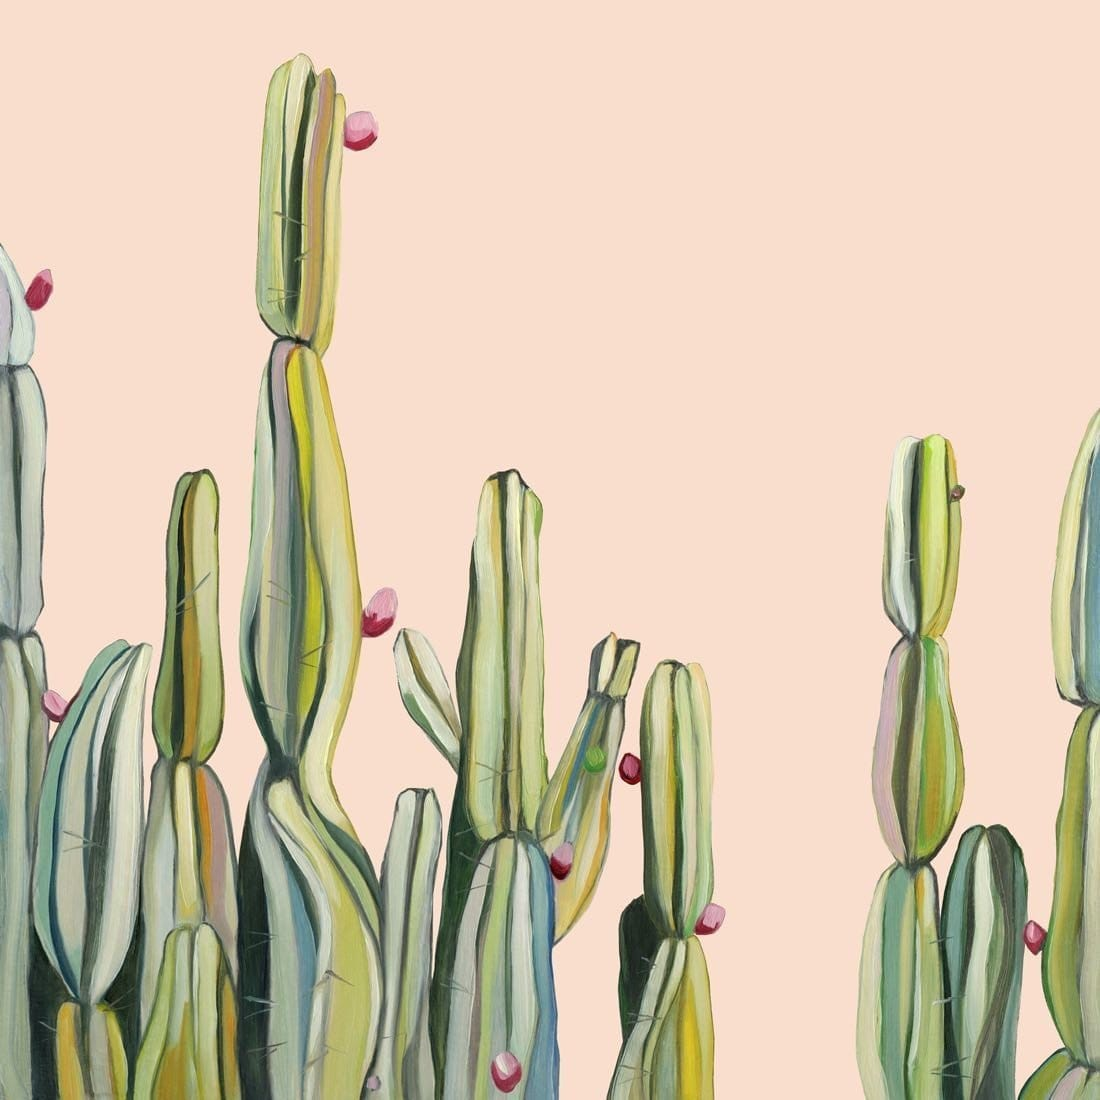 Kate Jarman Kimberley Cactus Limited Edition Prints